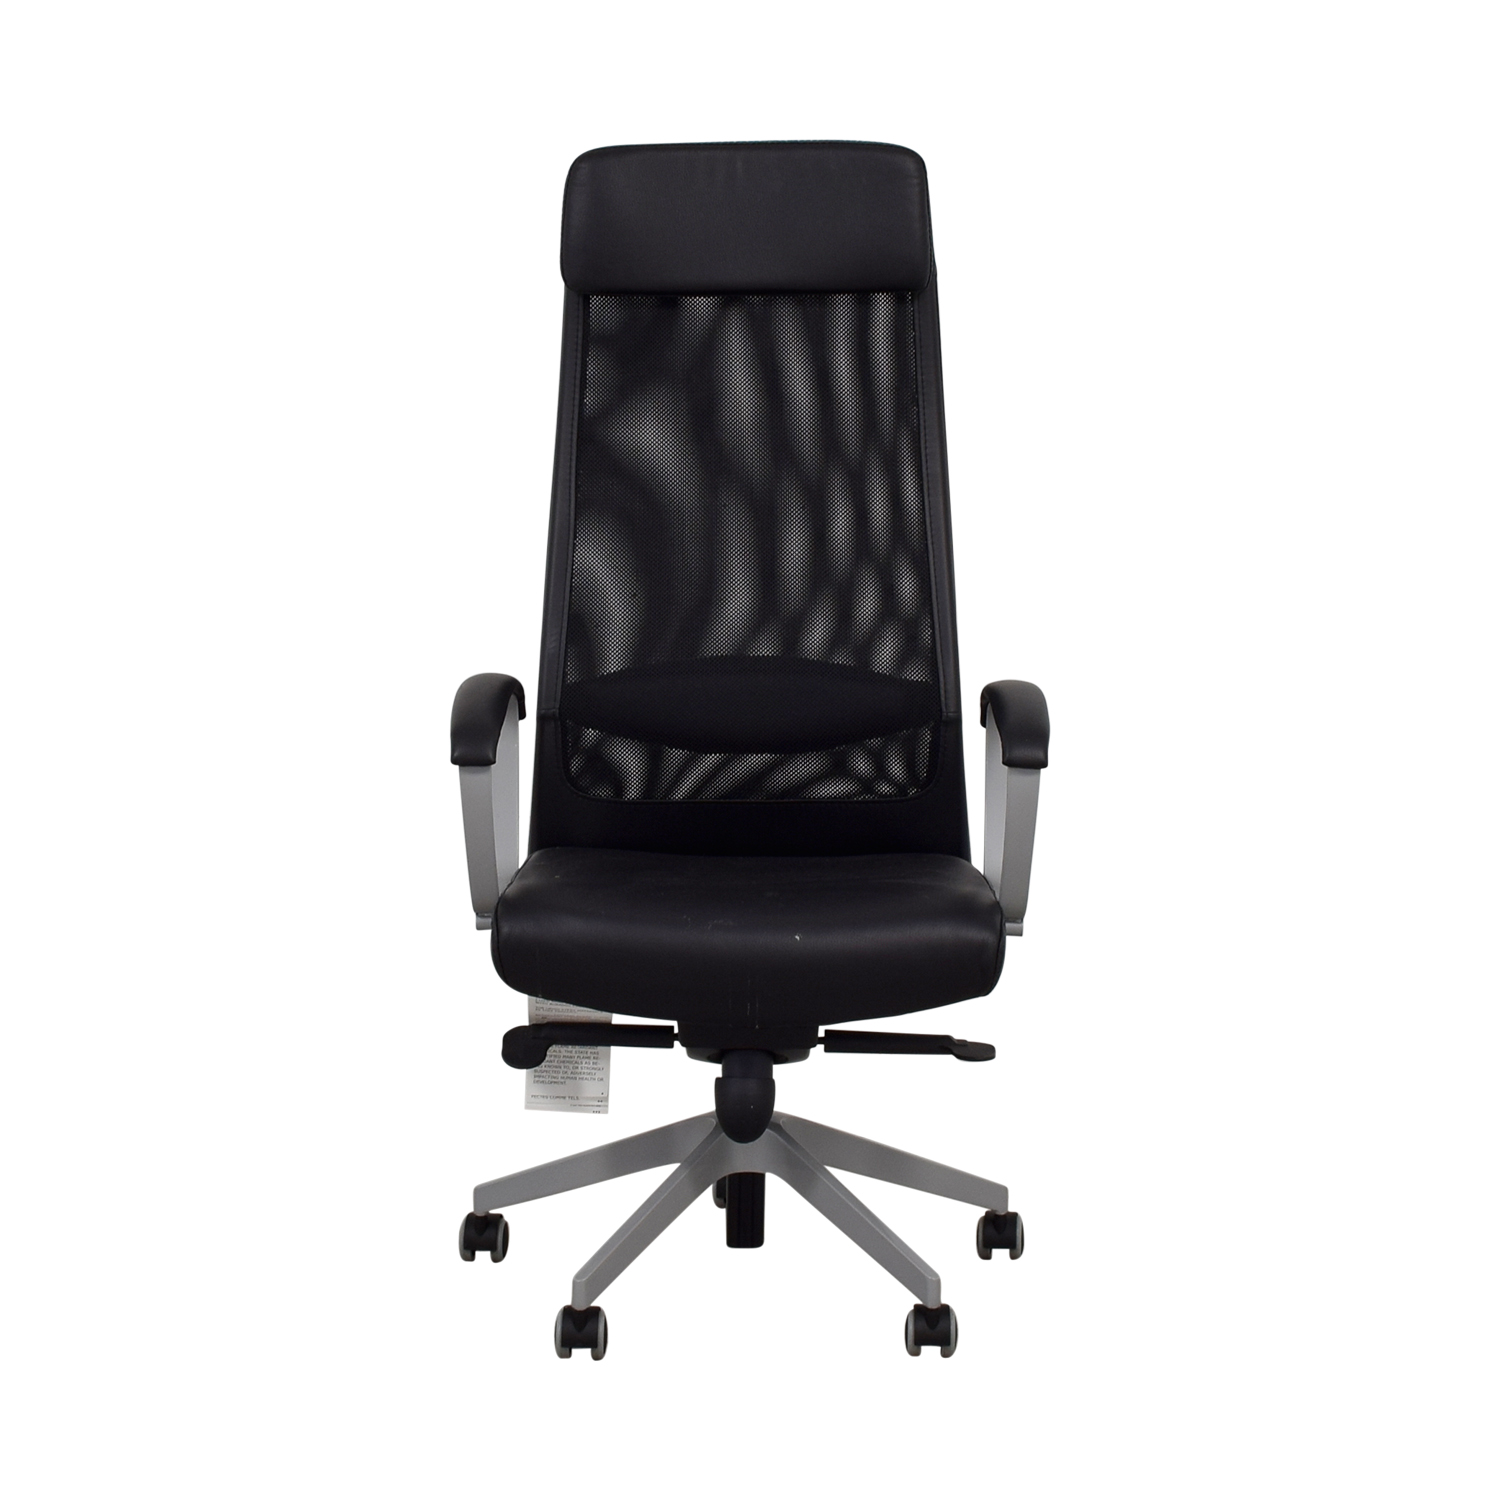 IKEA IKEA Black Adjustable Reclining Office Chair